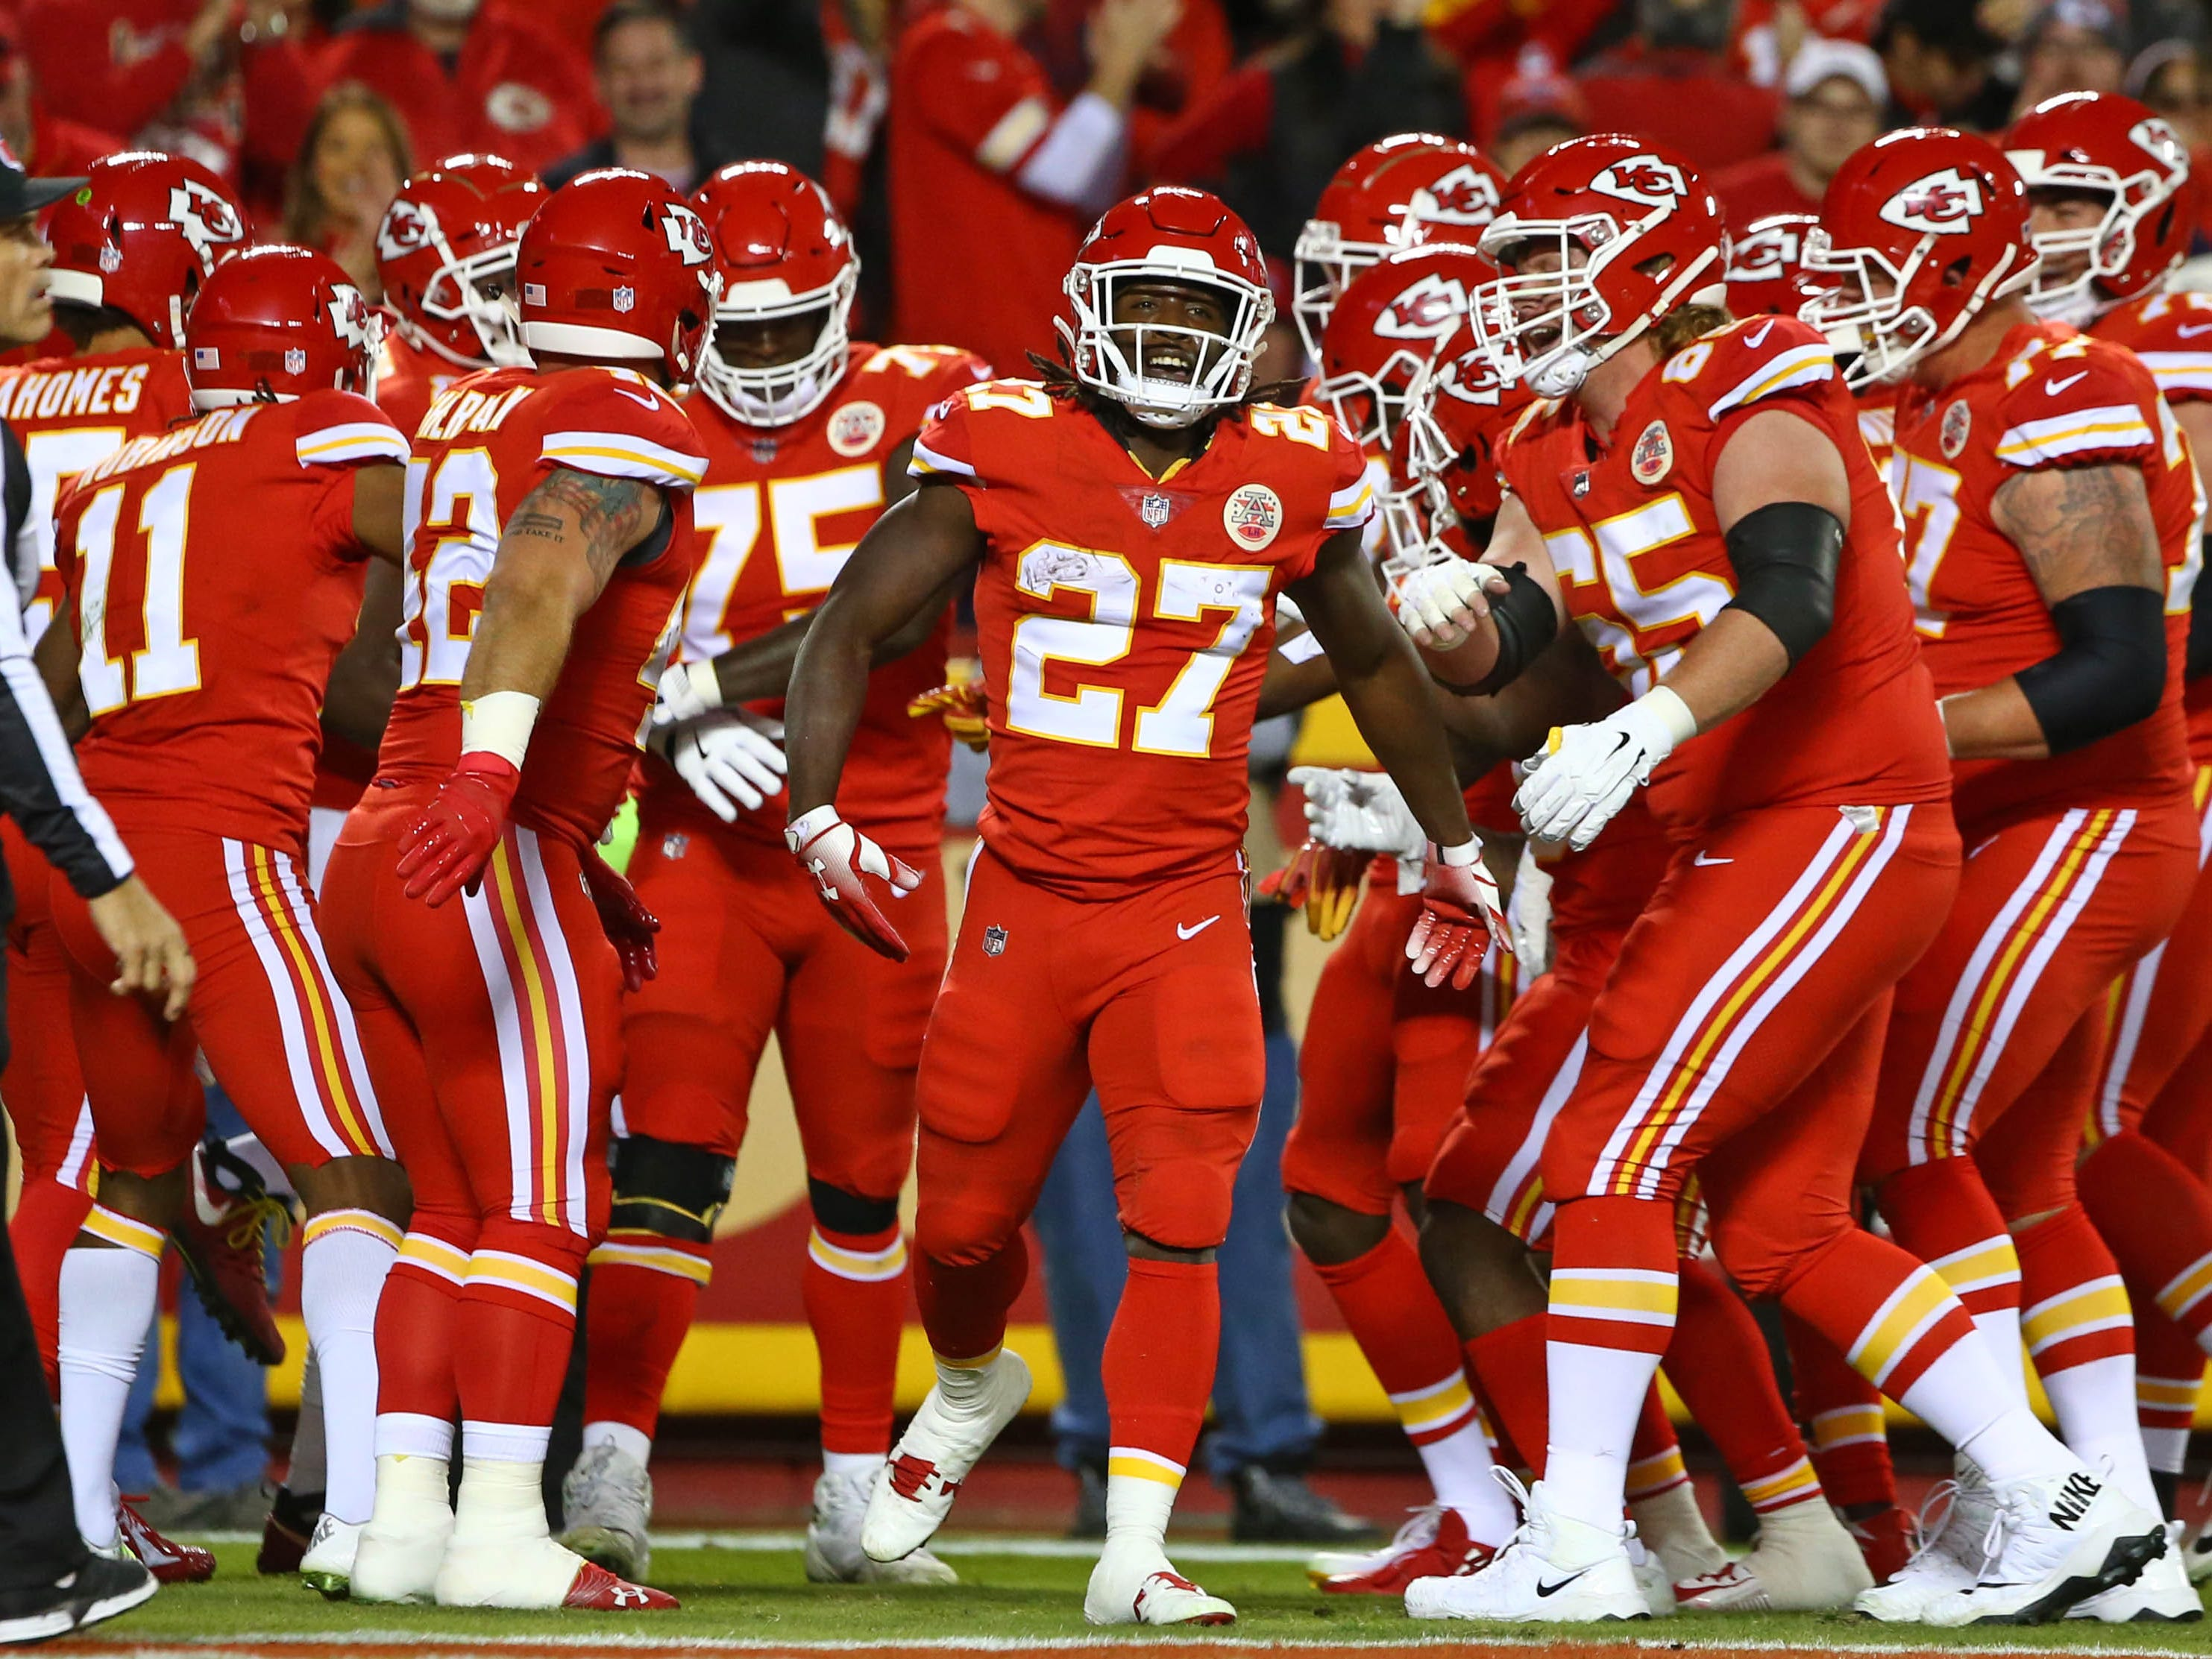 4. Chiefs (4): Things that make you go, 'Hmm.' Kansas City has outscored its opponents by 78 points this season, yet outgained them by a mere 14 yards.